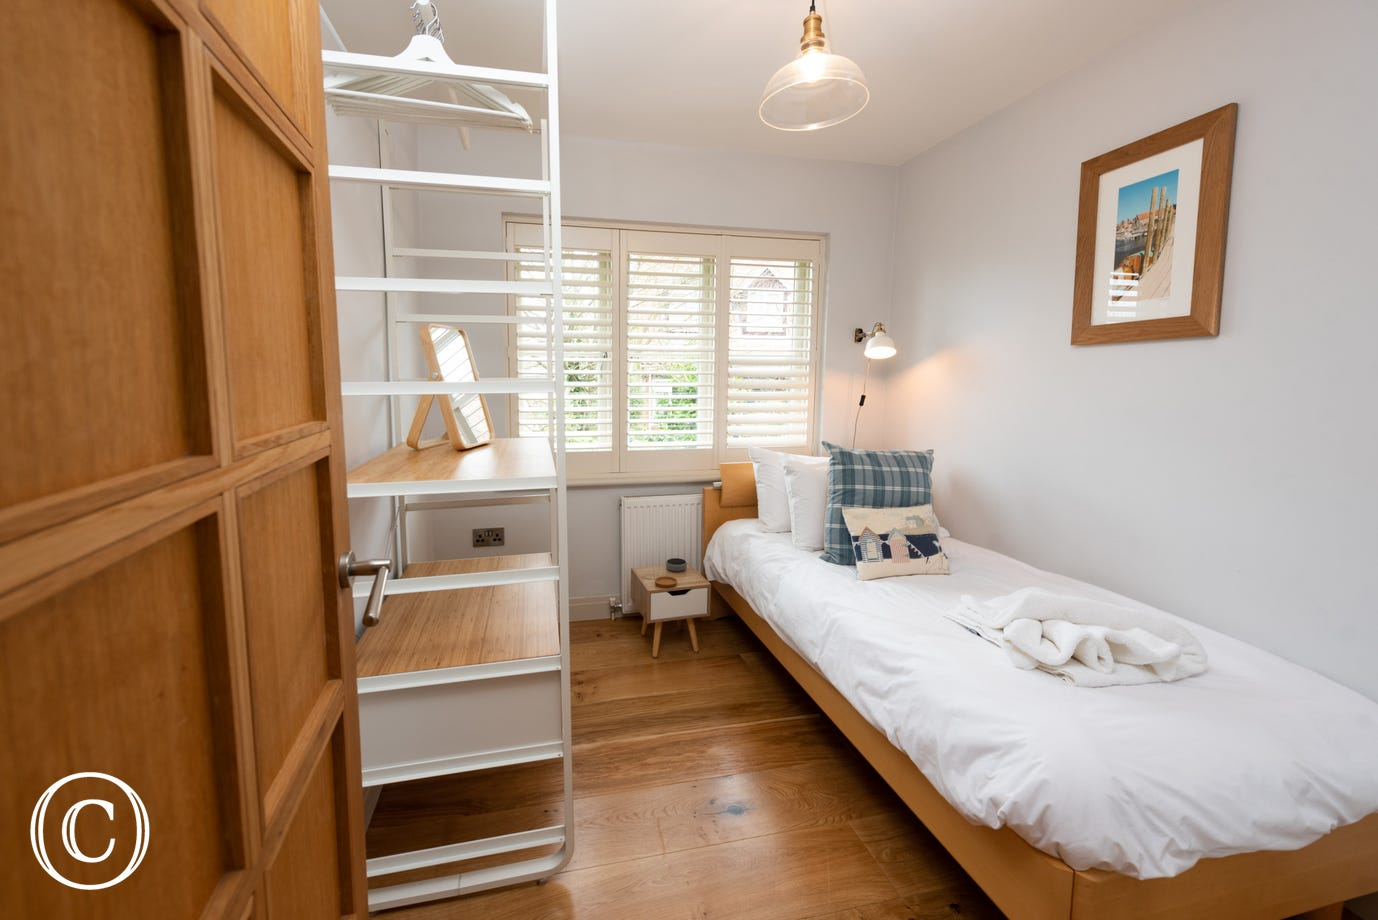 Bedroom 5 with single bed & storage